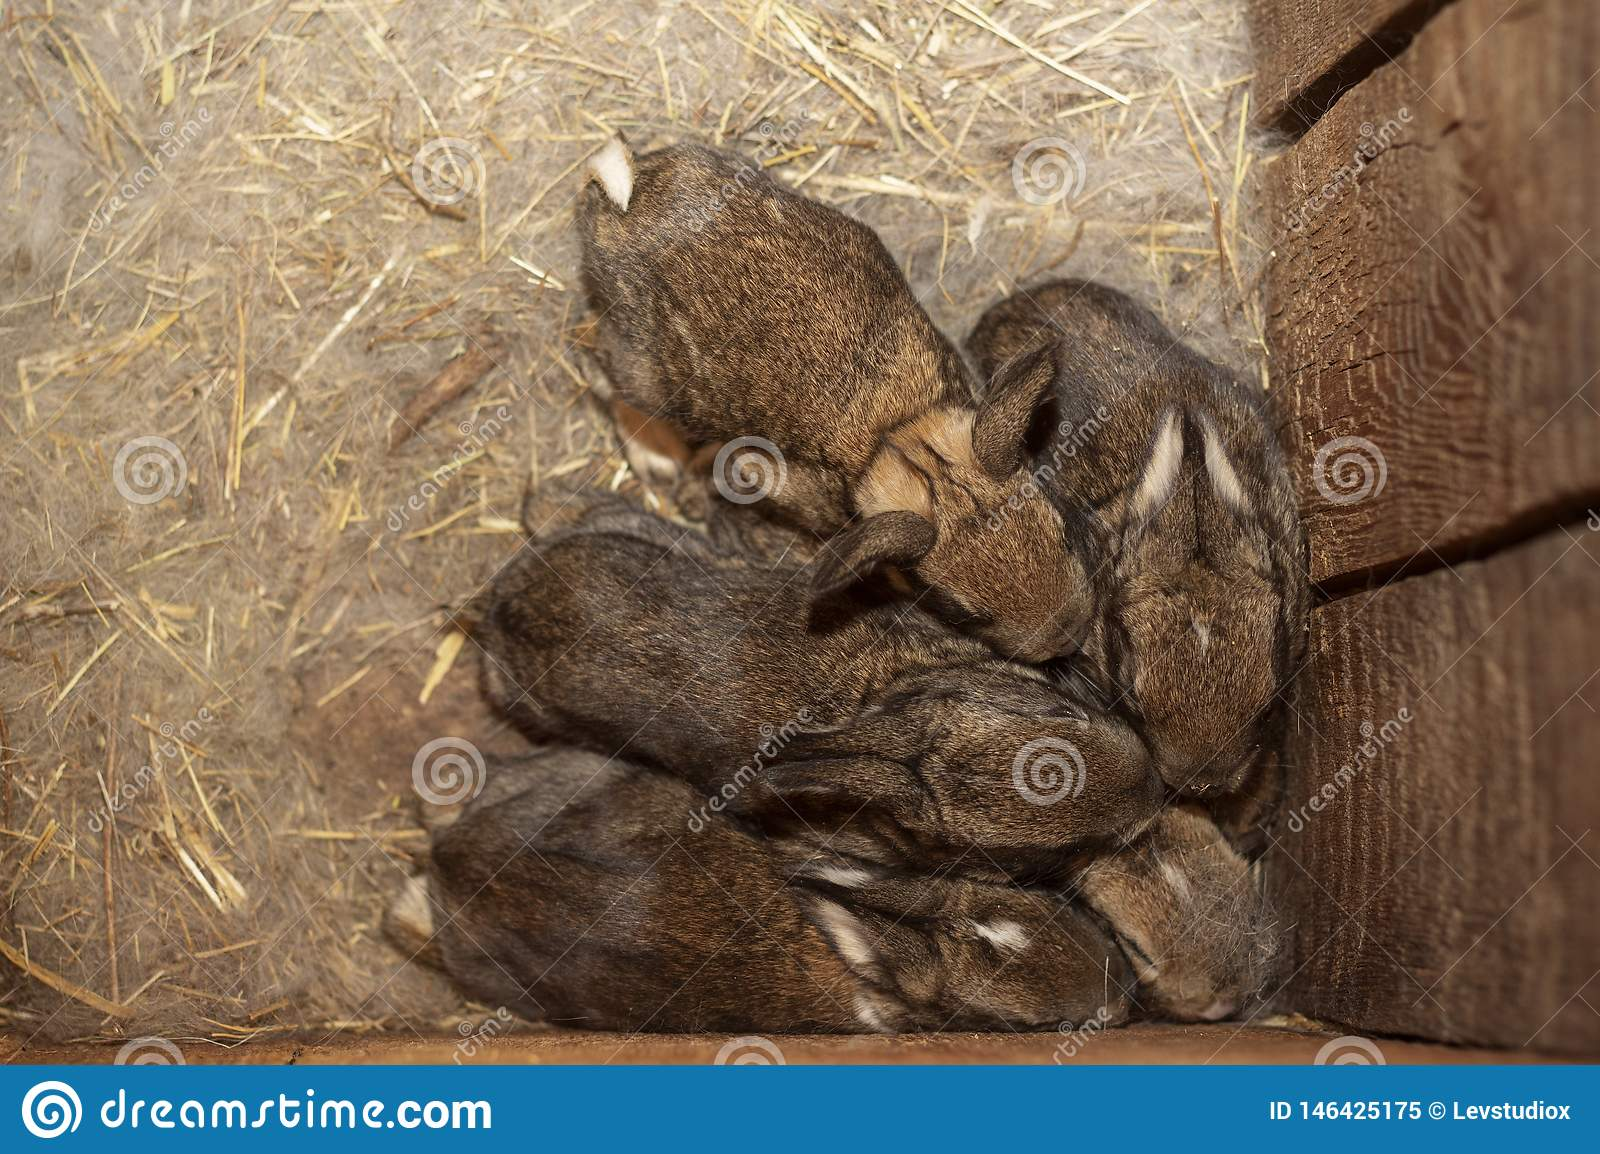 Babies rabbits in a warm nest of wool pressed against each other